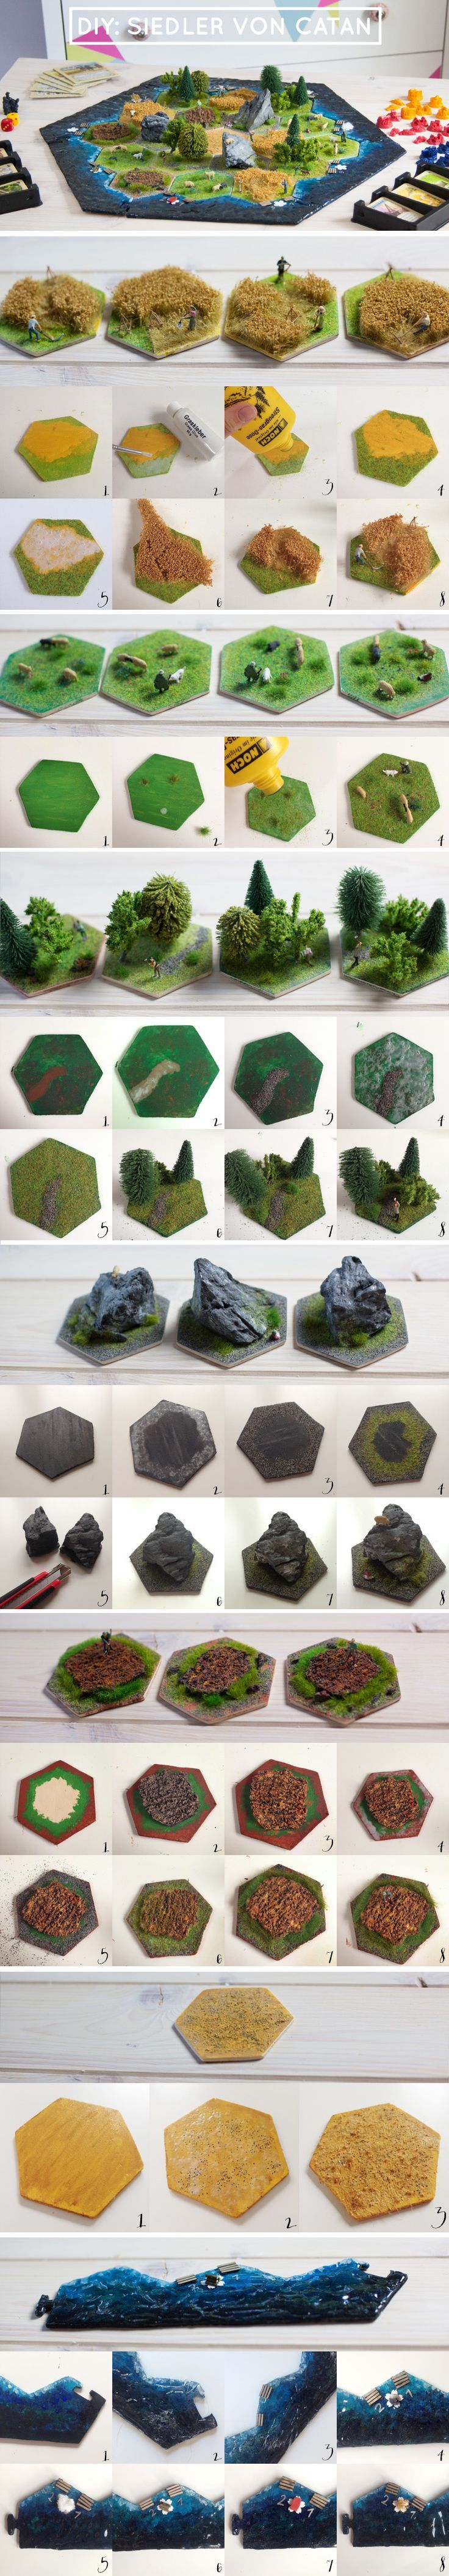 Mega DIY! The settlers of Catan in 3D! Just right for all game fans! With miniature figures.